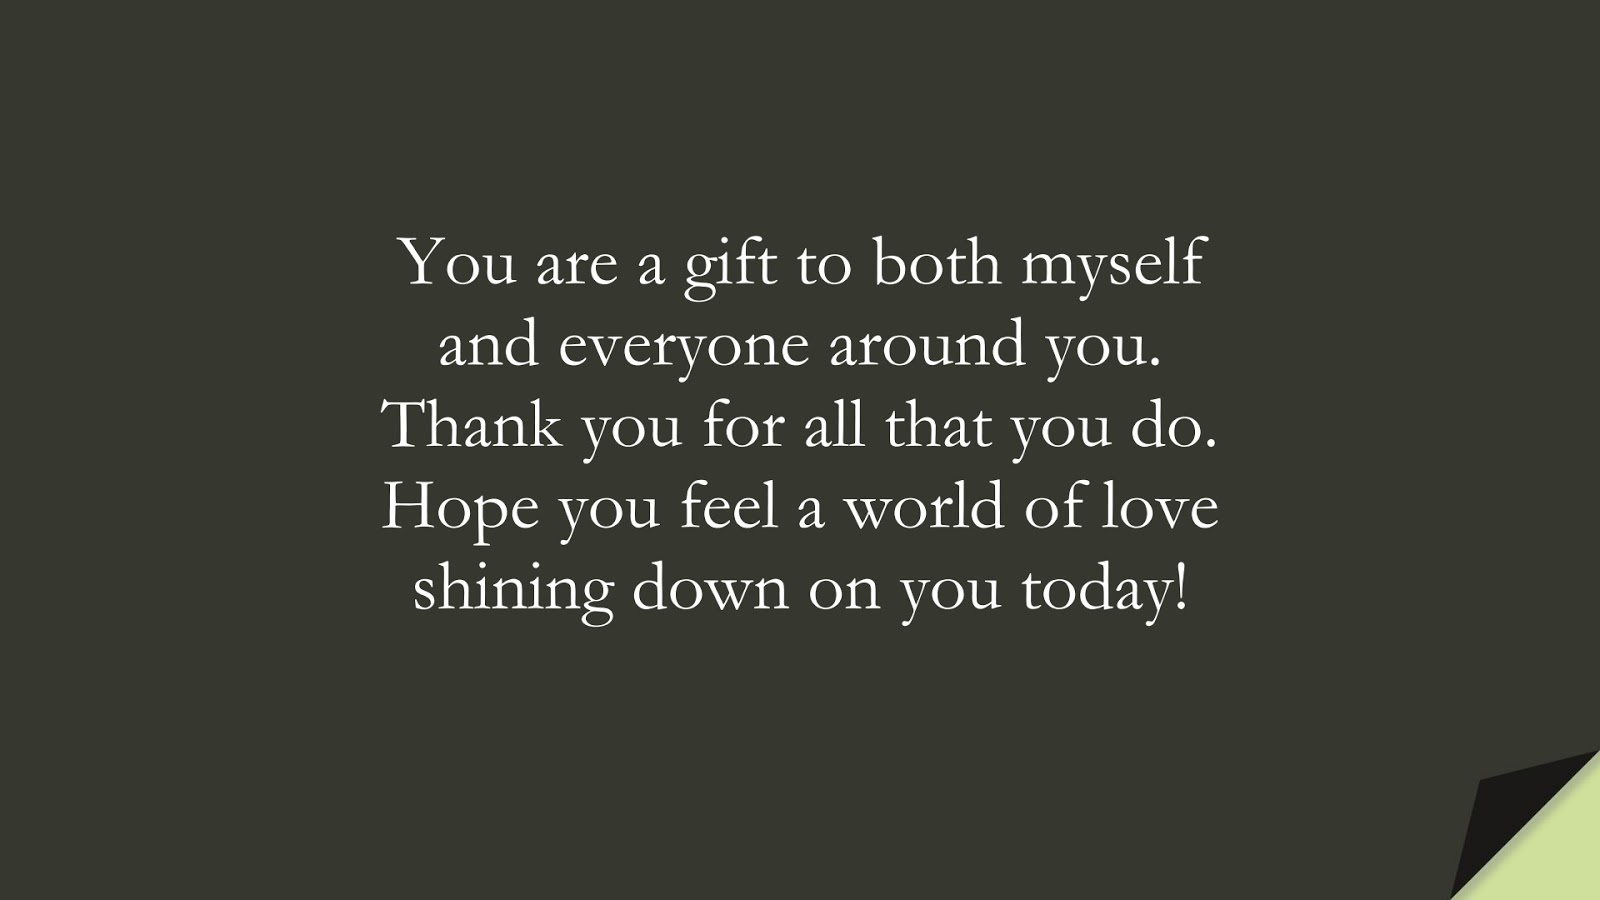 You are a gift to both myself and everyone around you. Thank you for all that you do. Hope you feel a world of love shining down on you today!FALSE